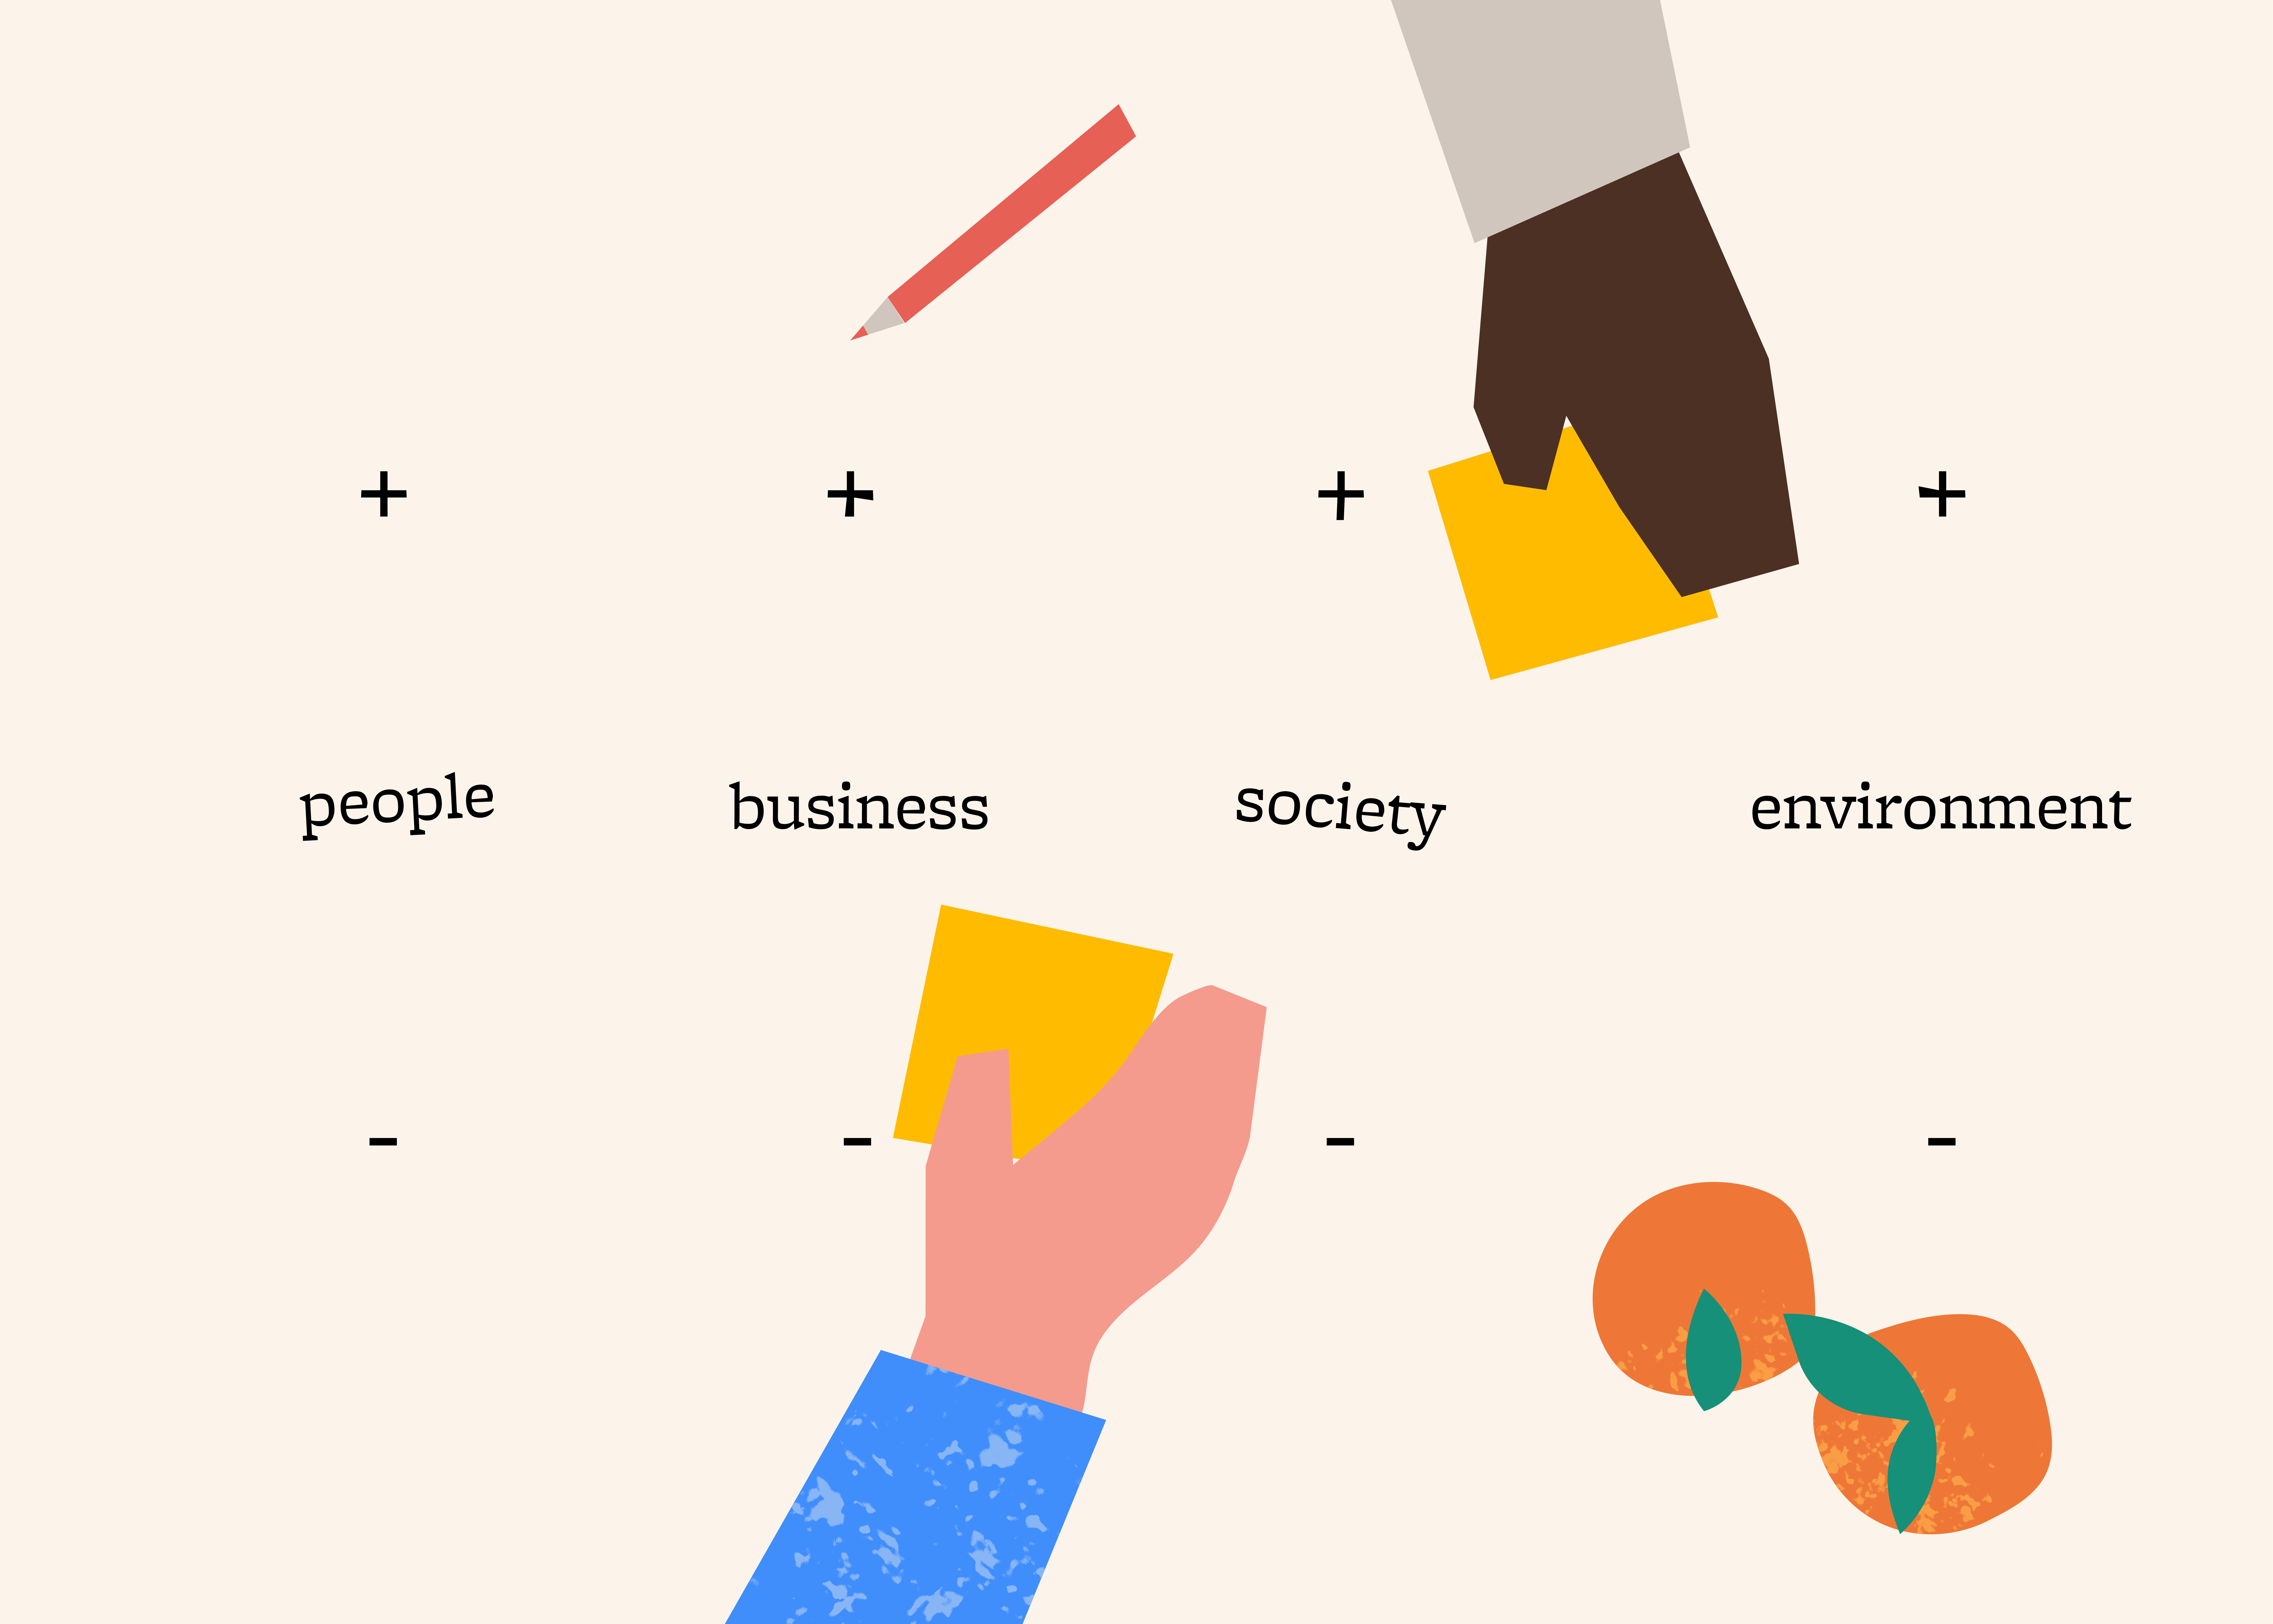 Four areas of the design impact board: people, business, society, and environment.